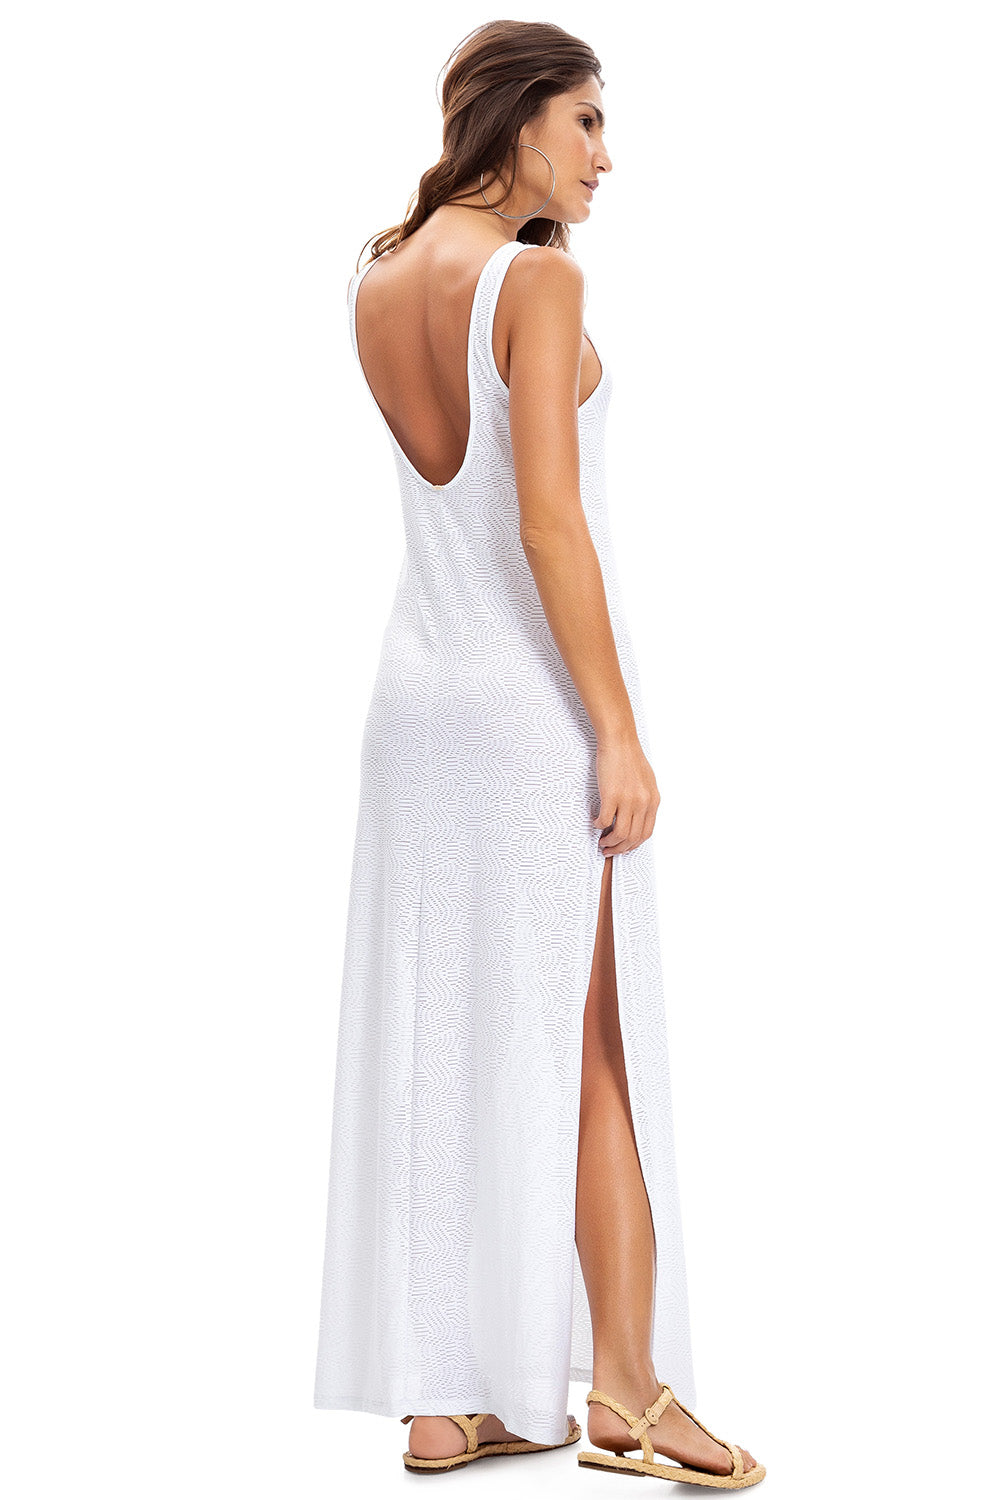 Beach Sand Essential Long Dress